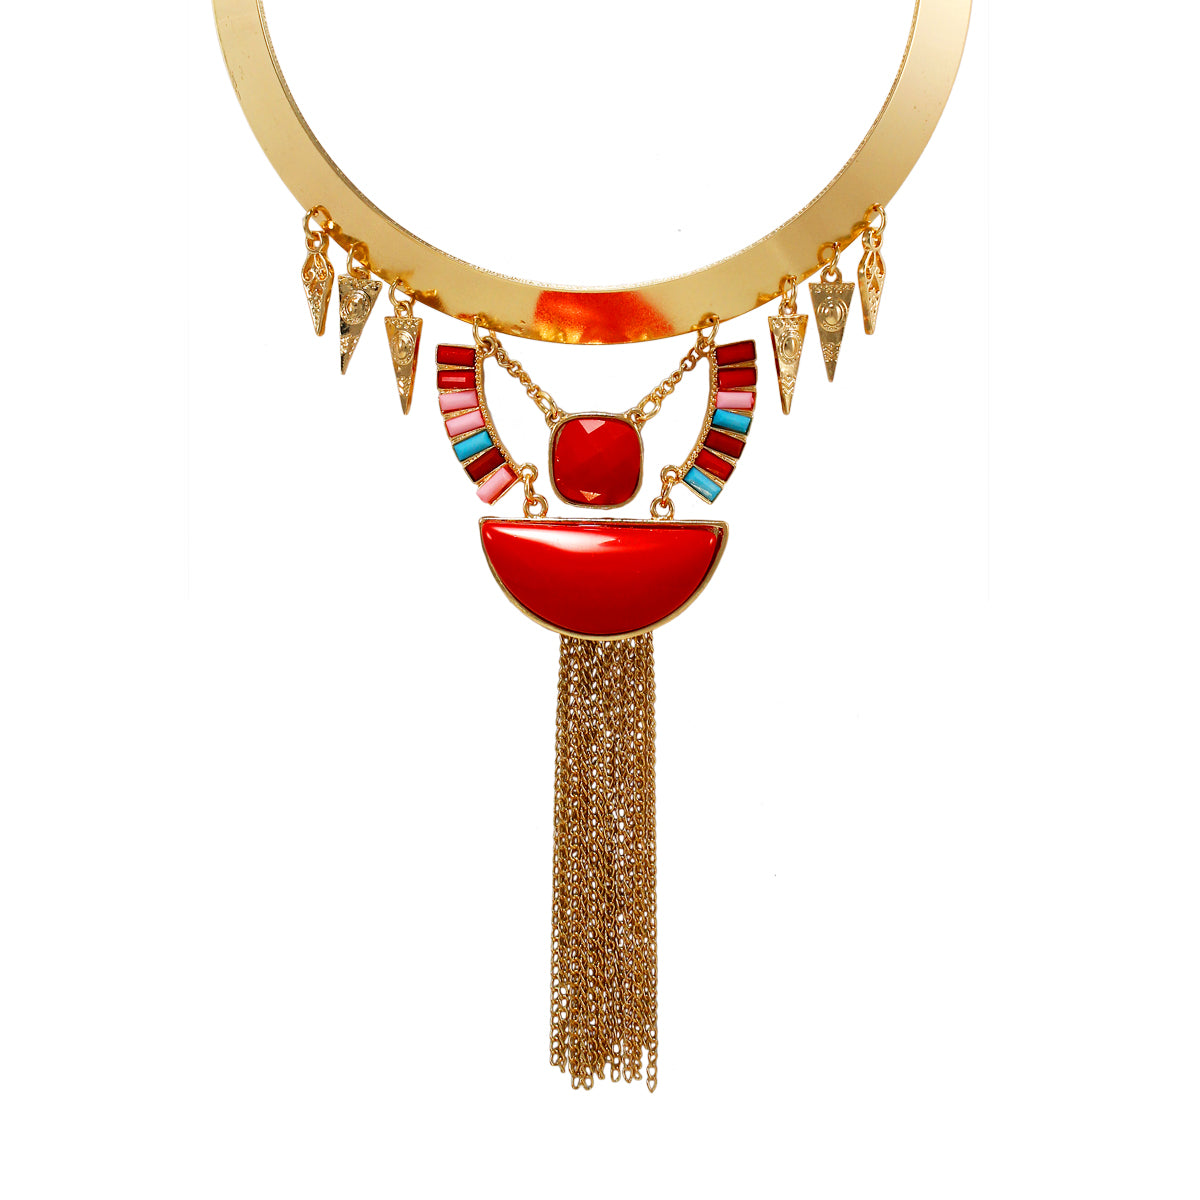 Stylish Designer Golden Necklace with Red Stones and chain Dangler